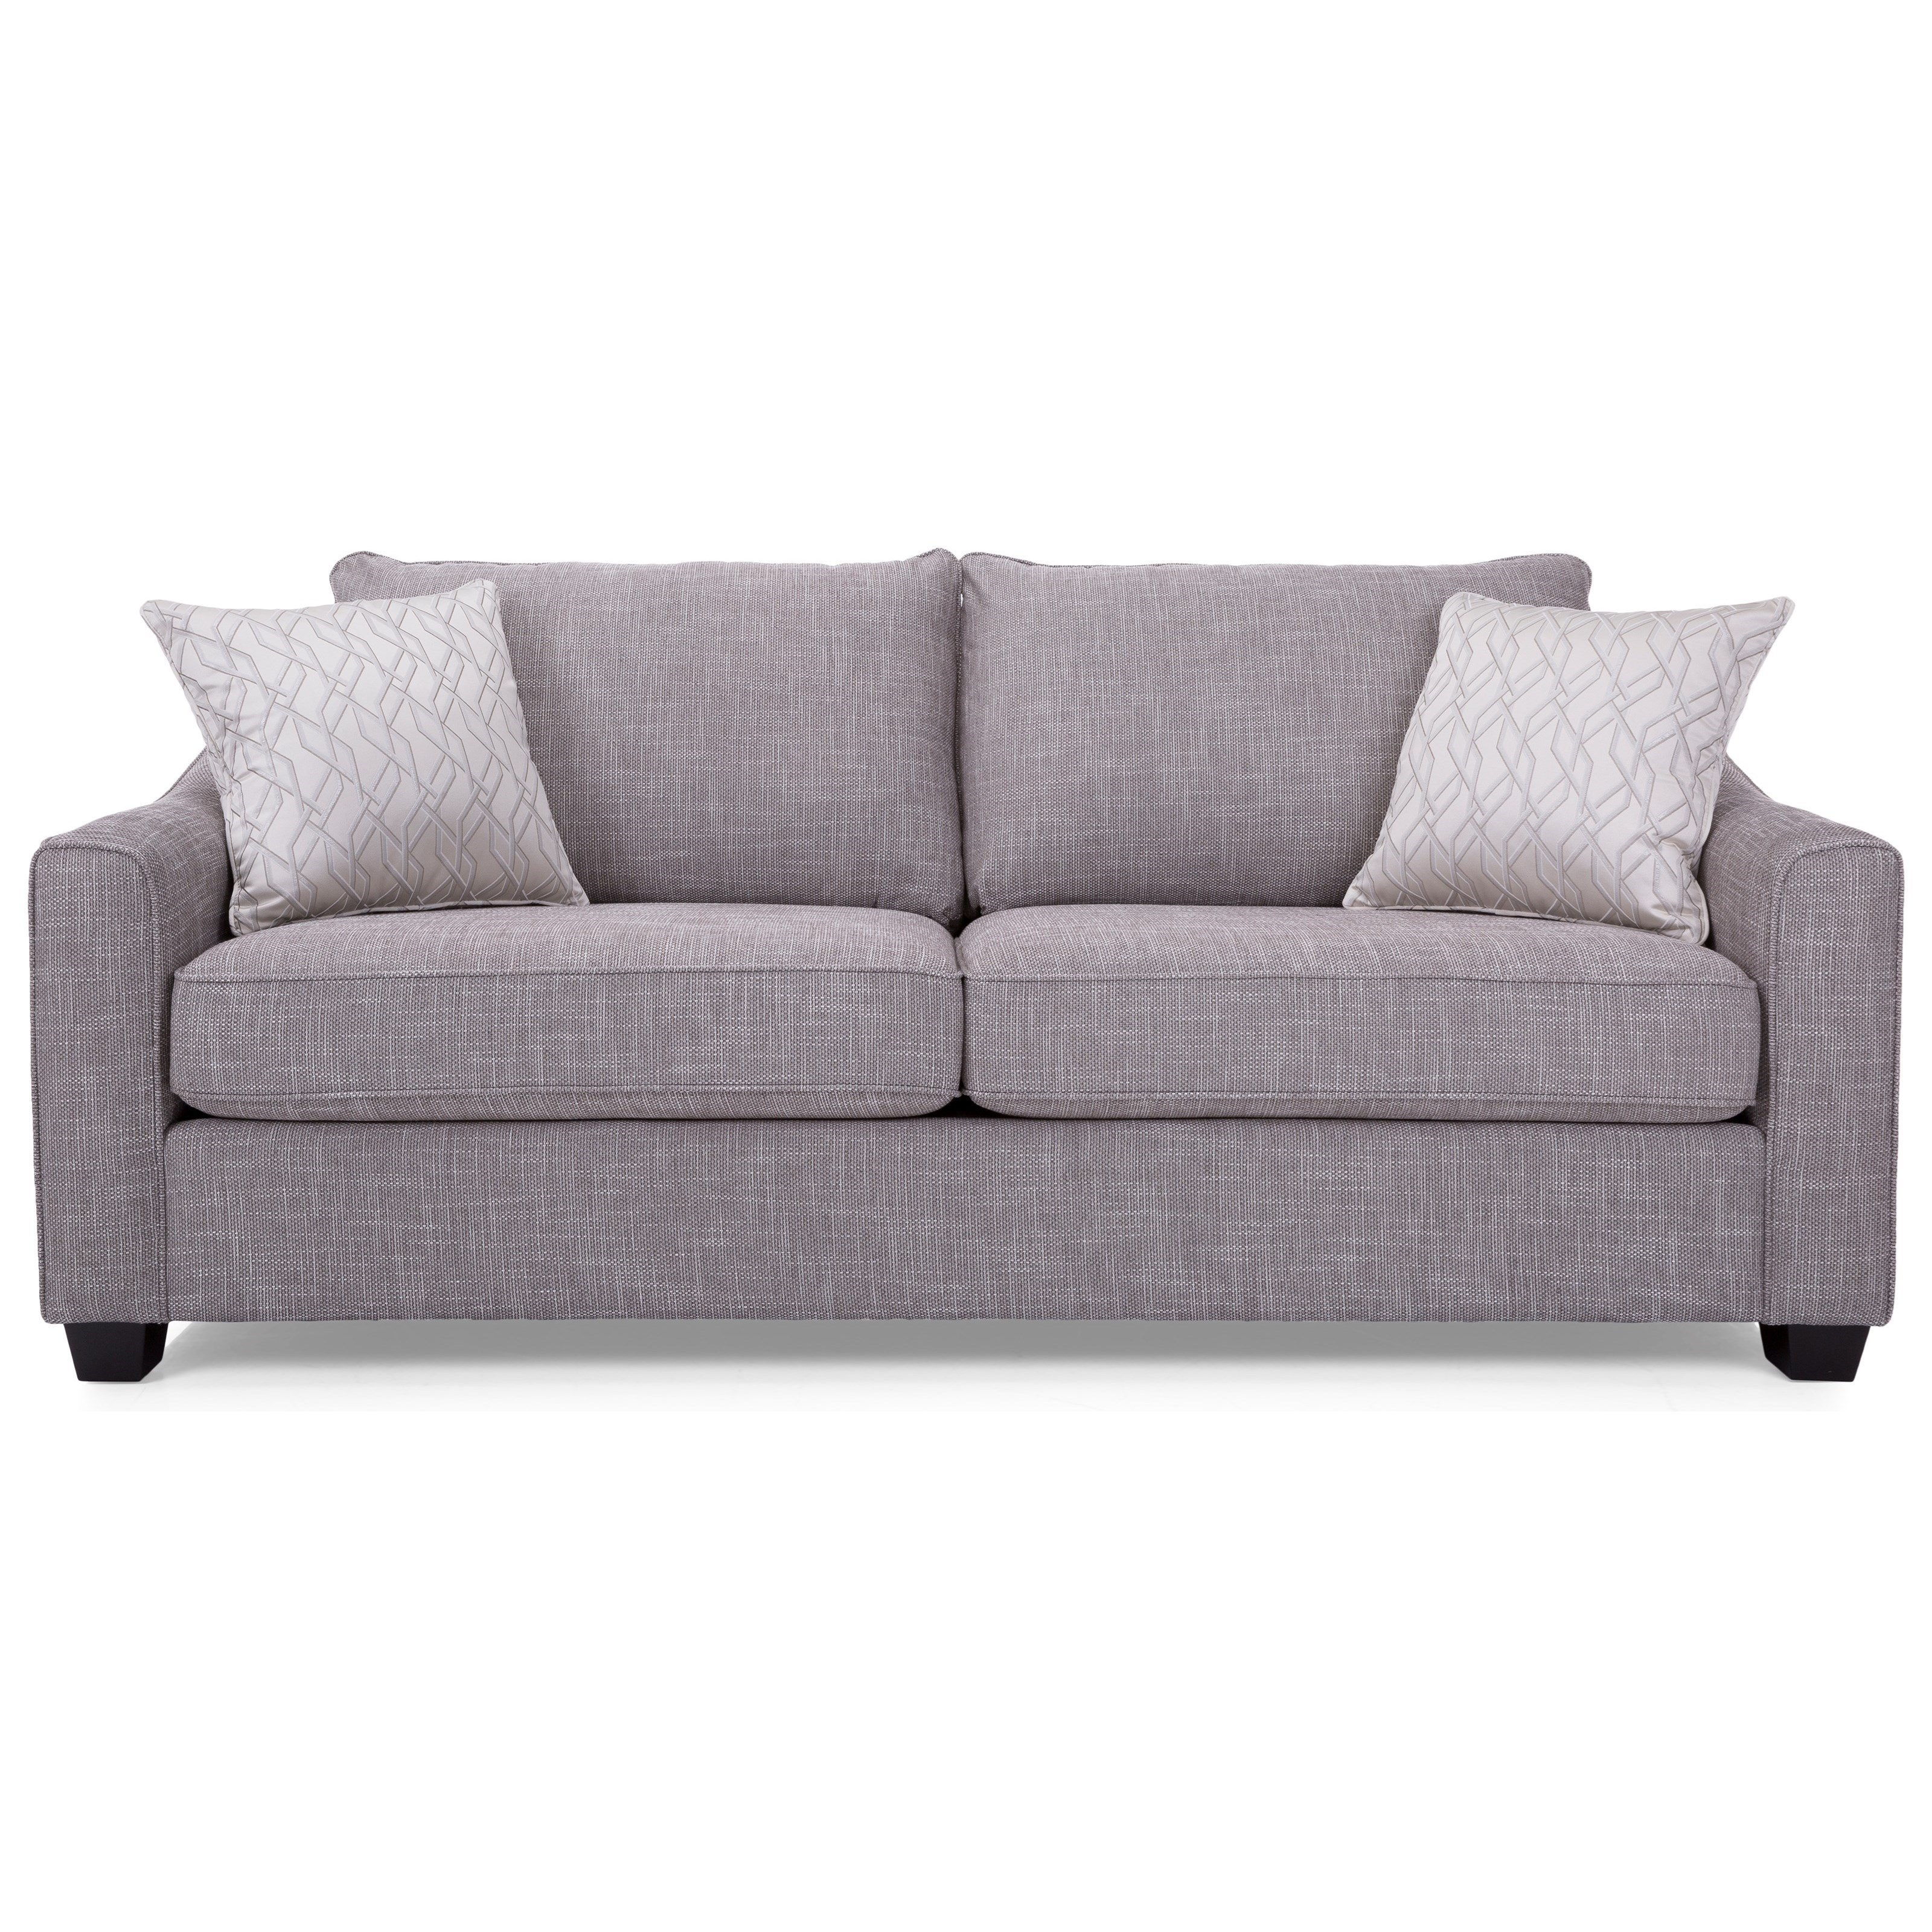 2981 Sofa by Decor-Rest at Rooms for Less